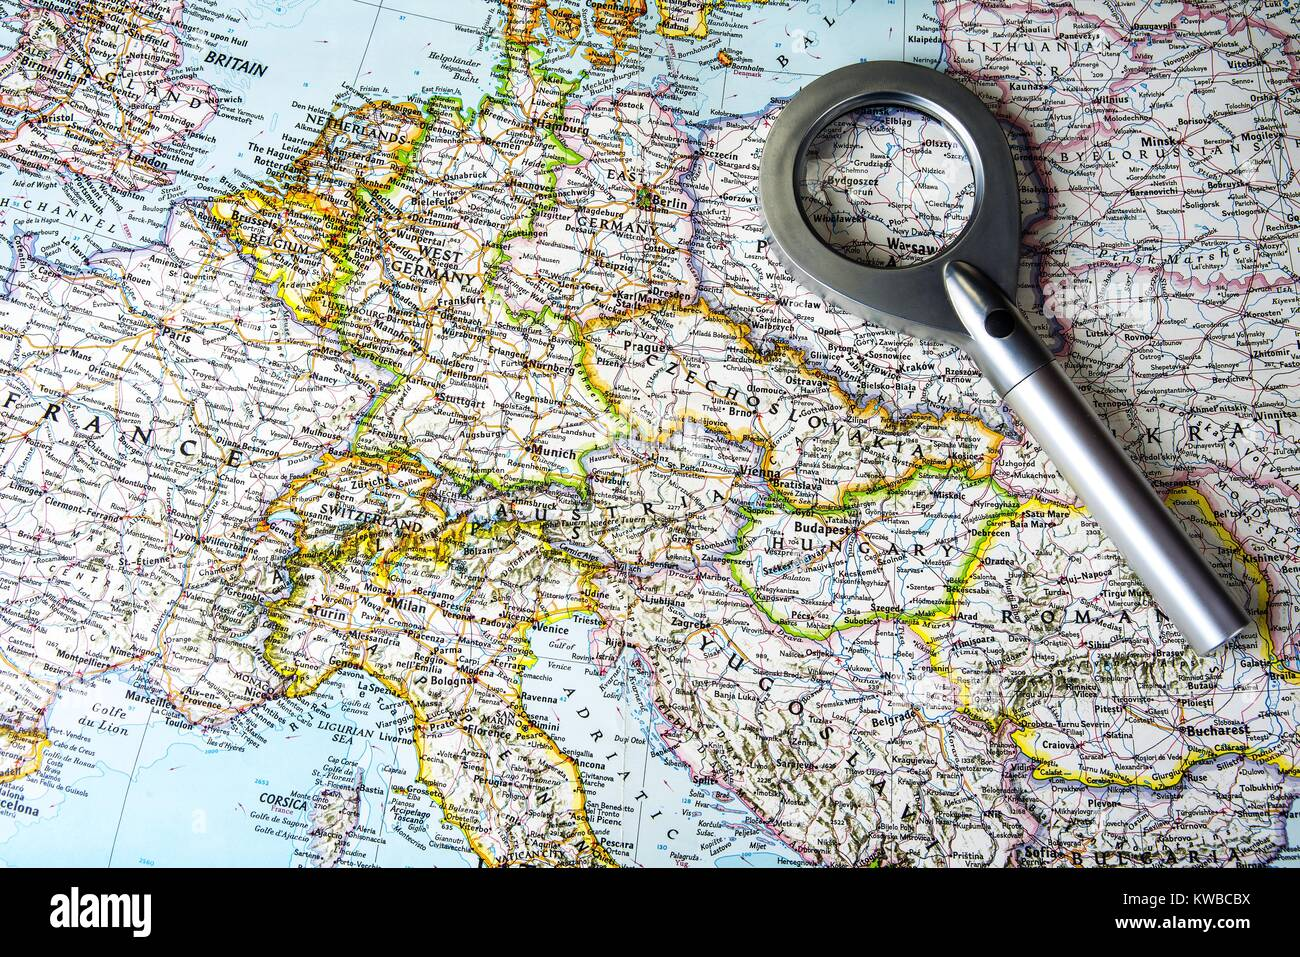 Map Of East West Germany.Old Central Europe Map With East And West Germany Stock Photo